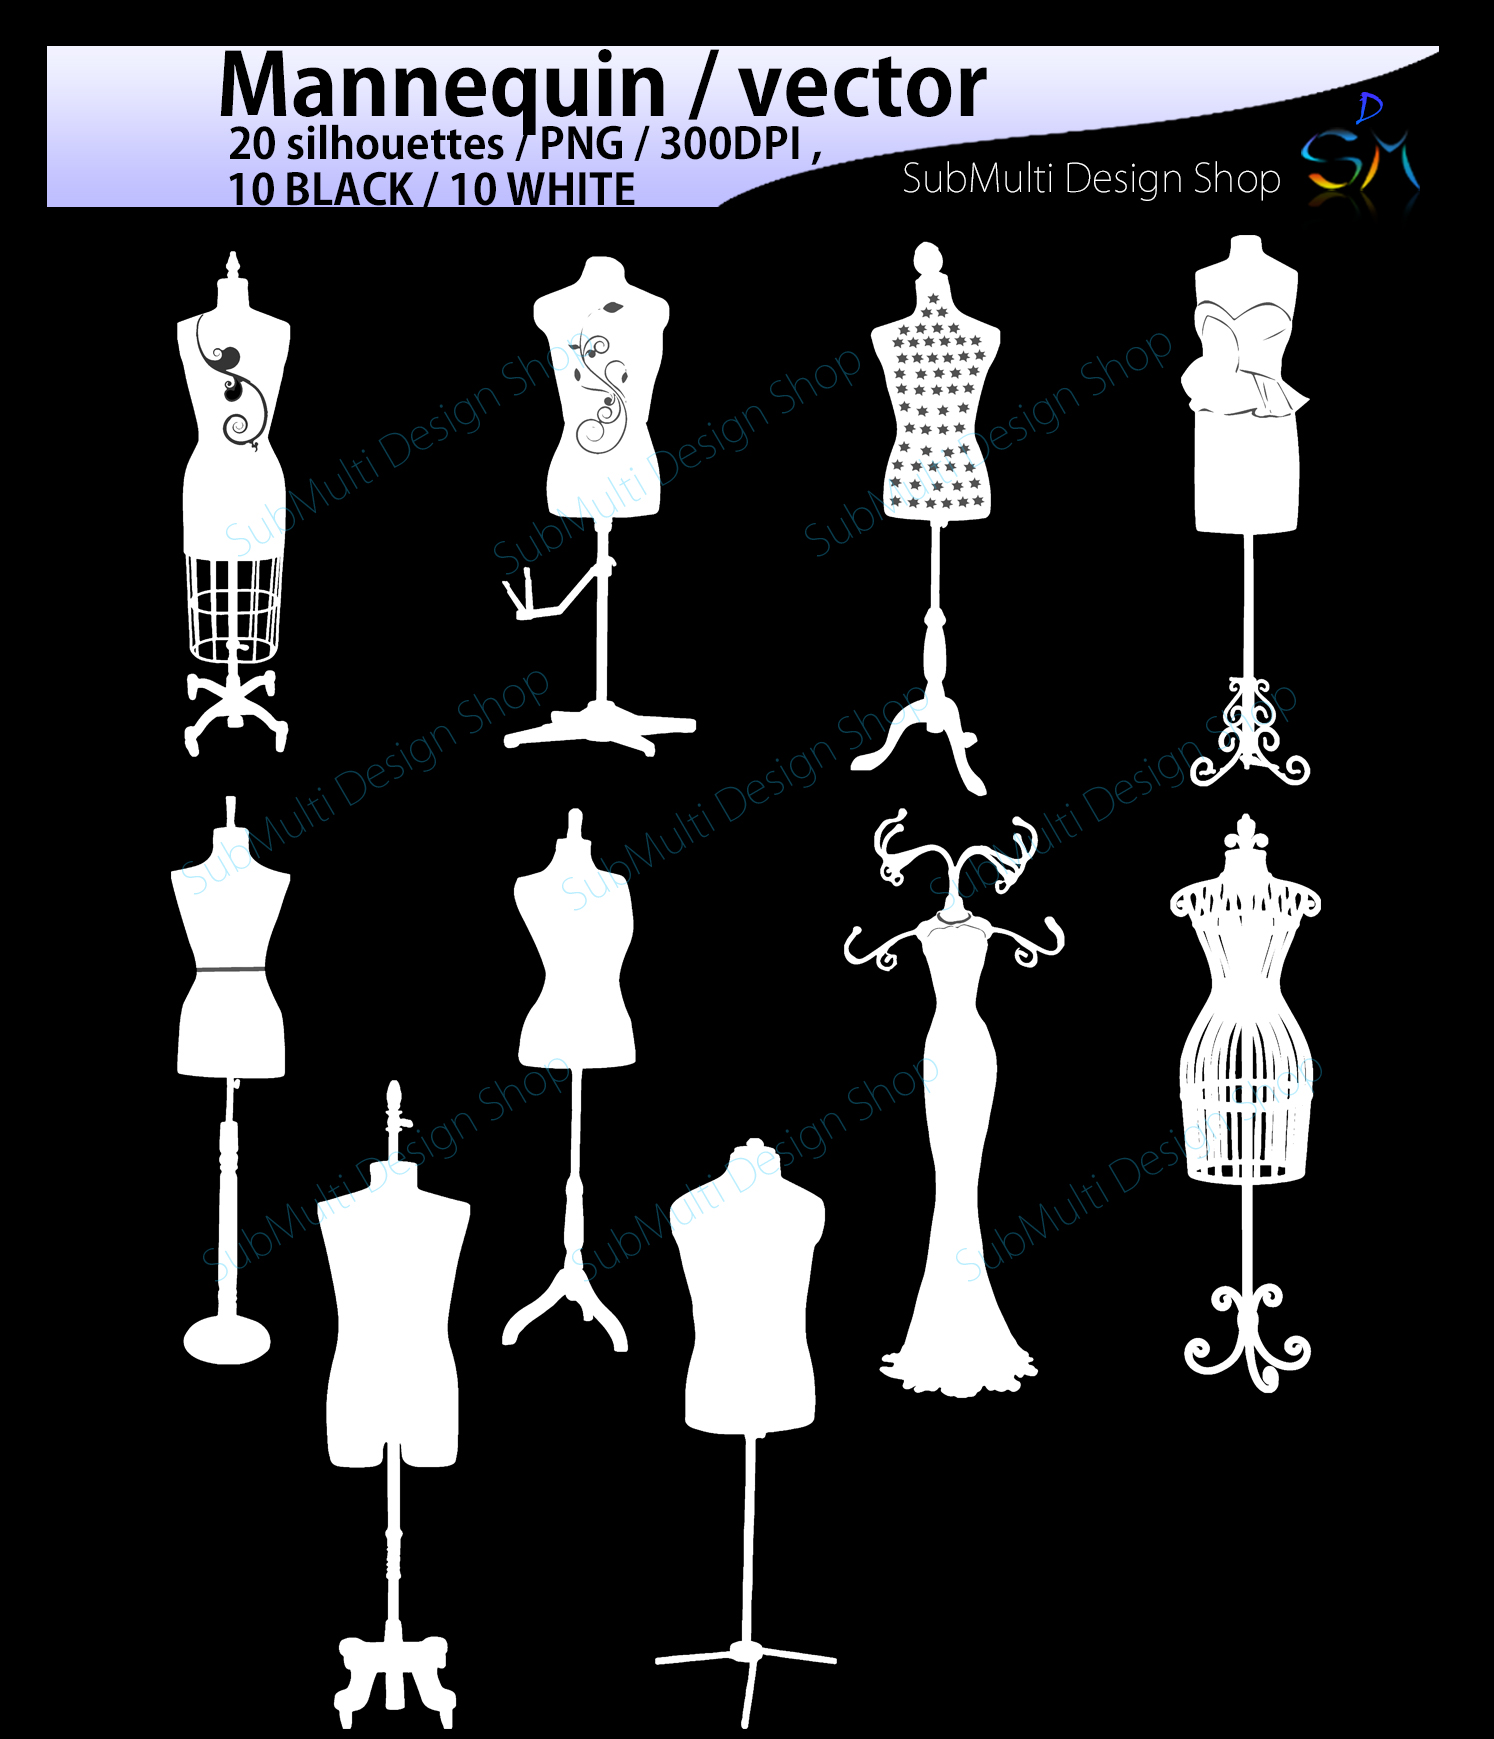 Mannequin svg / mannequin silhouette / EPS / SVG files / mannequin clipart / mannequin craft file / PNG /High Quality / 10B + 10w example image 3